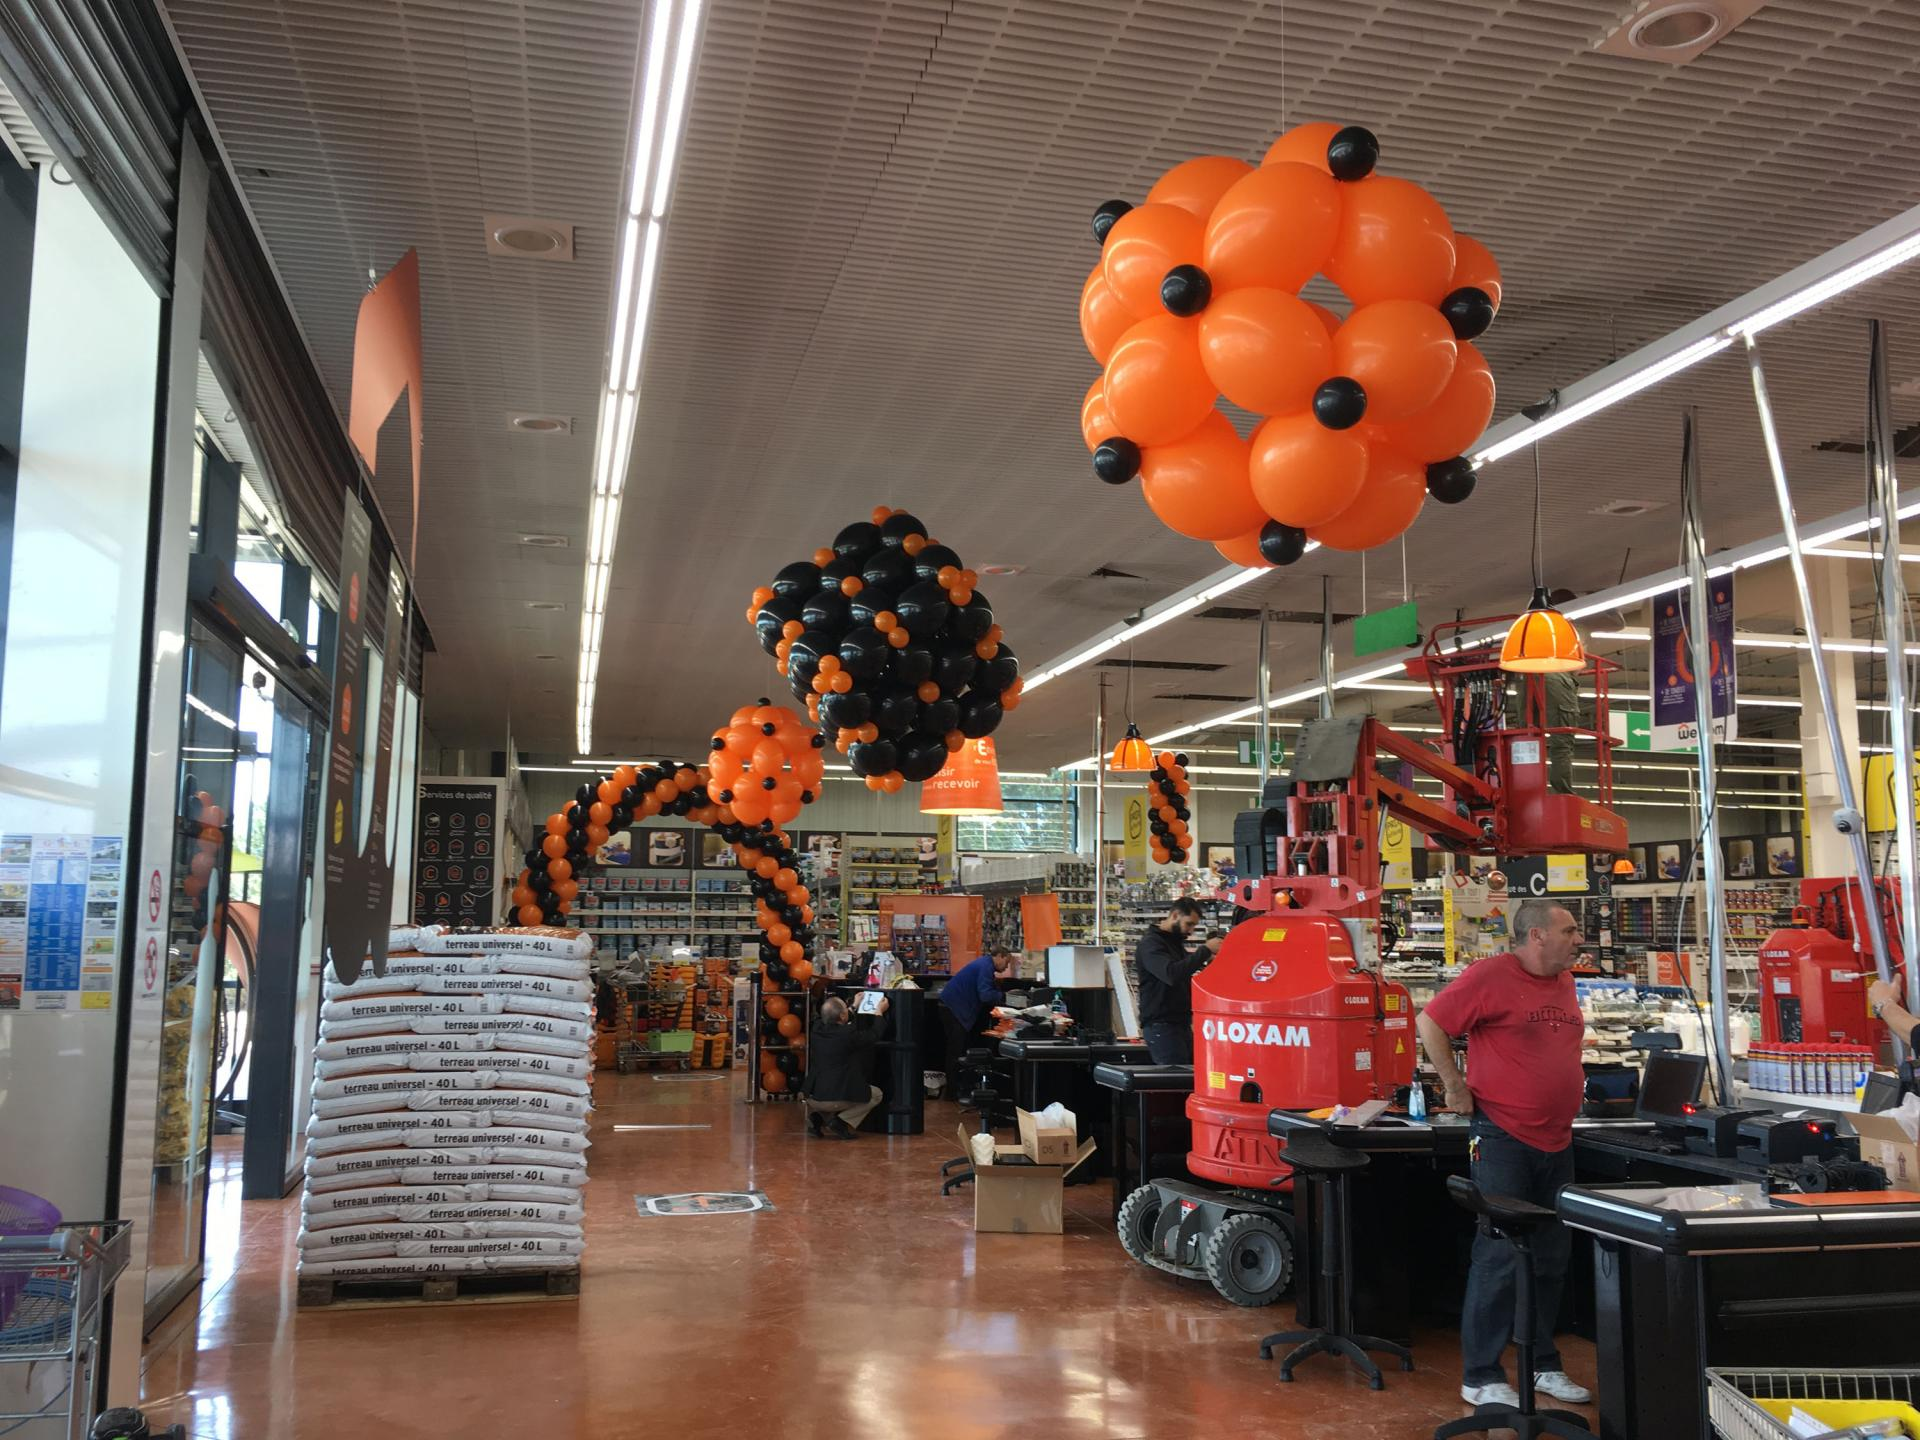 Arche ballon magasin